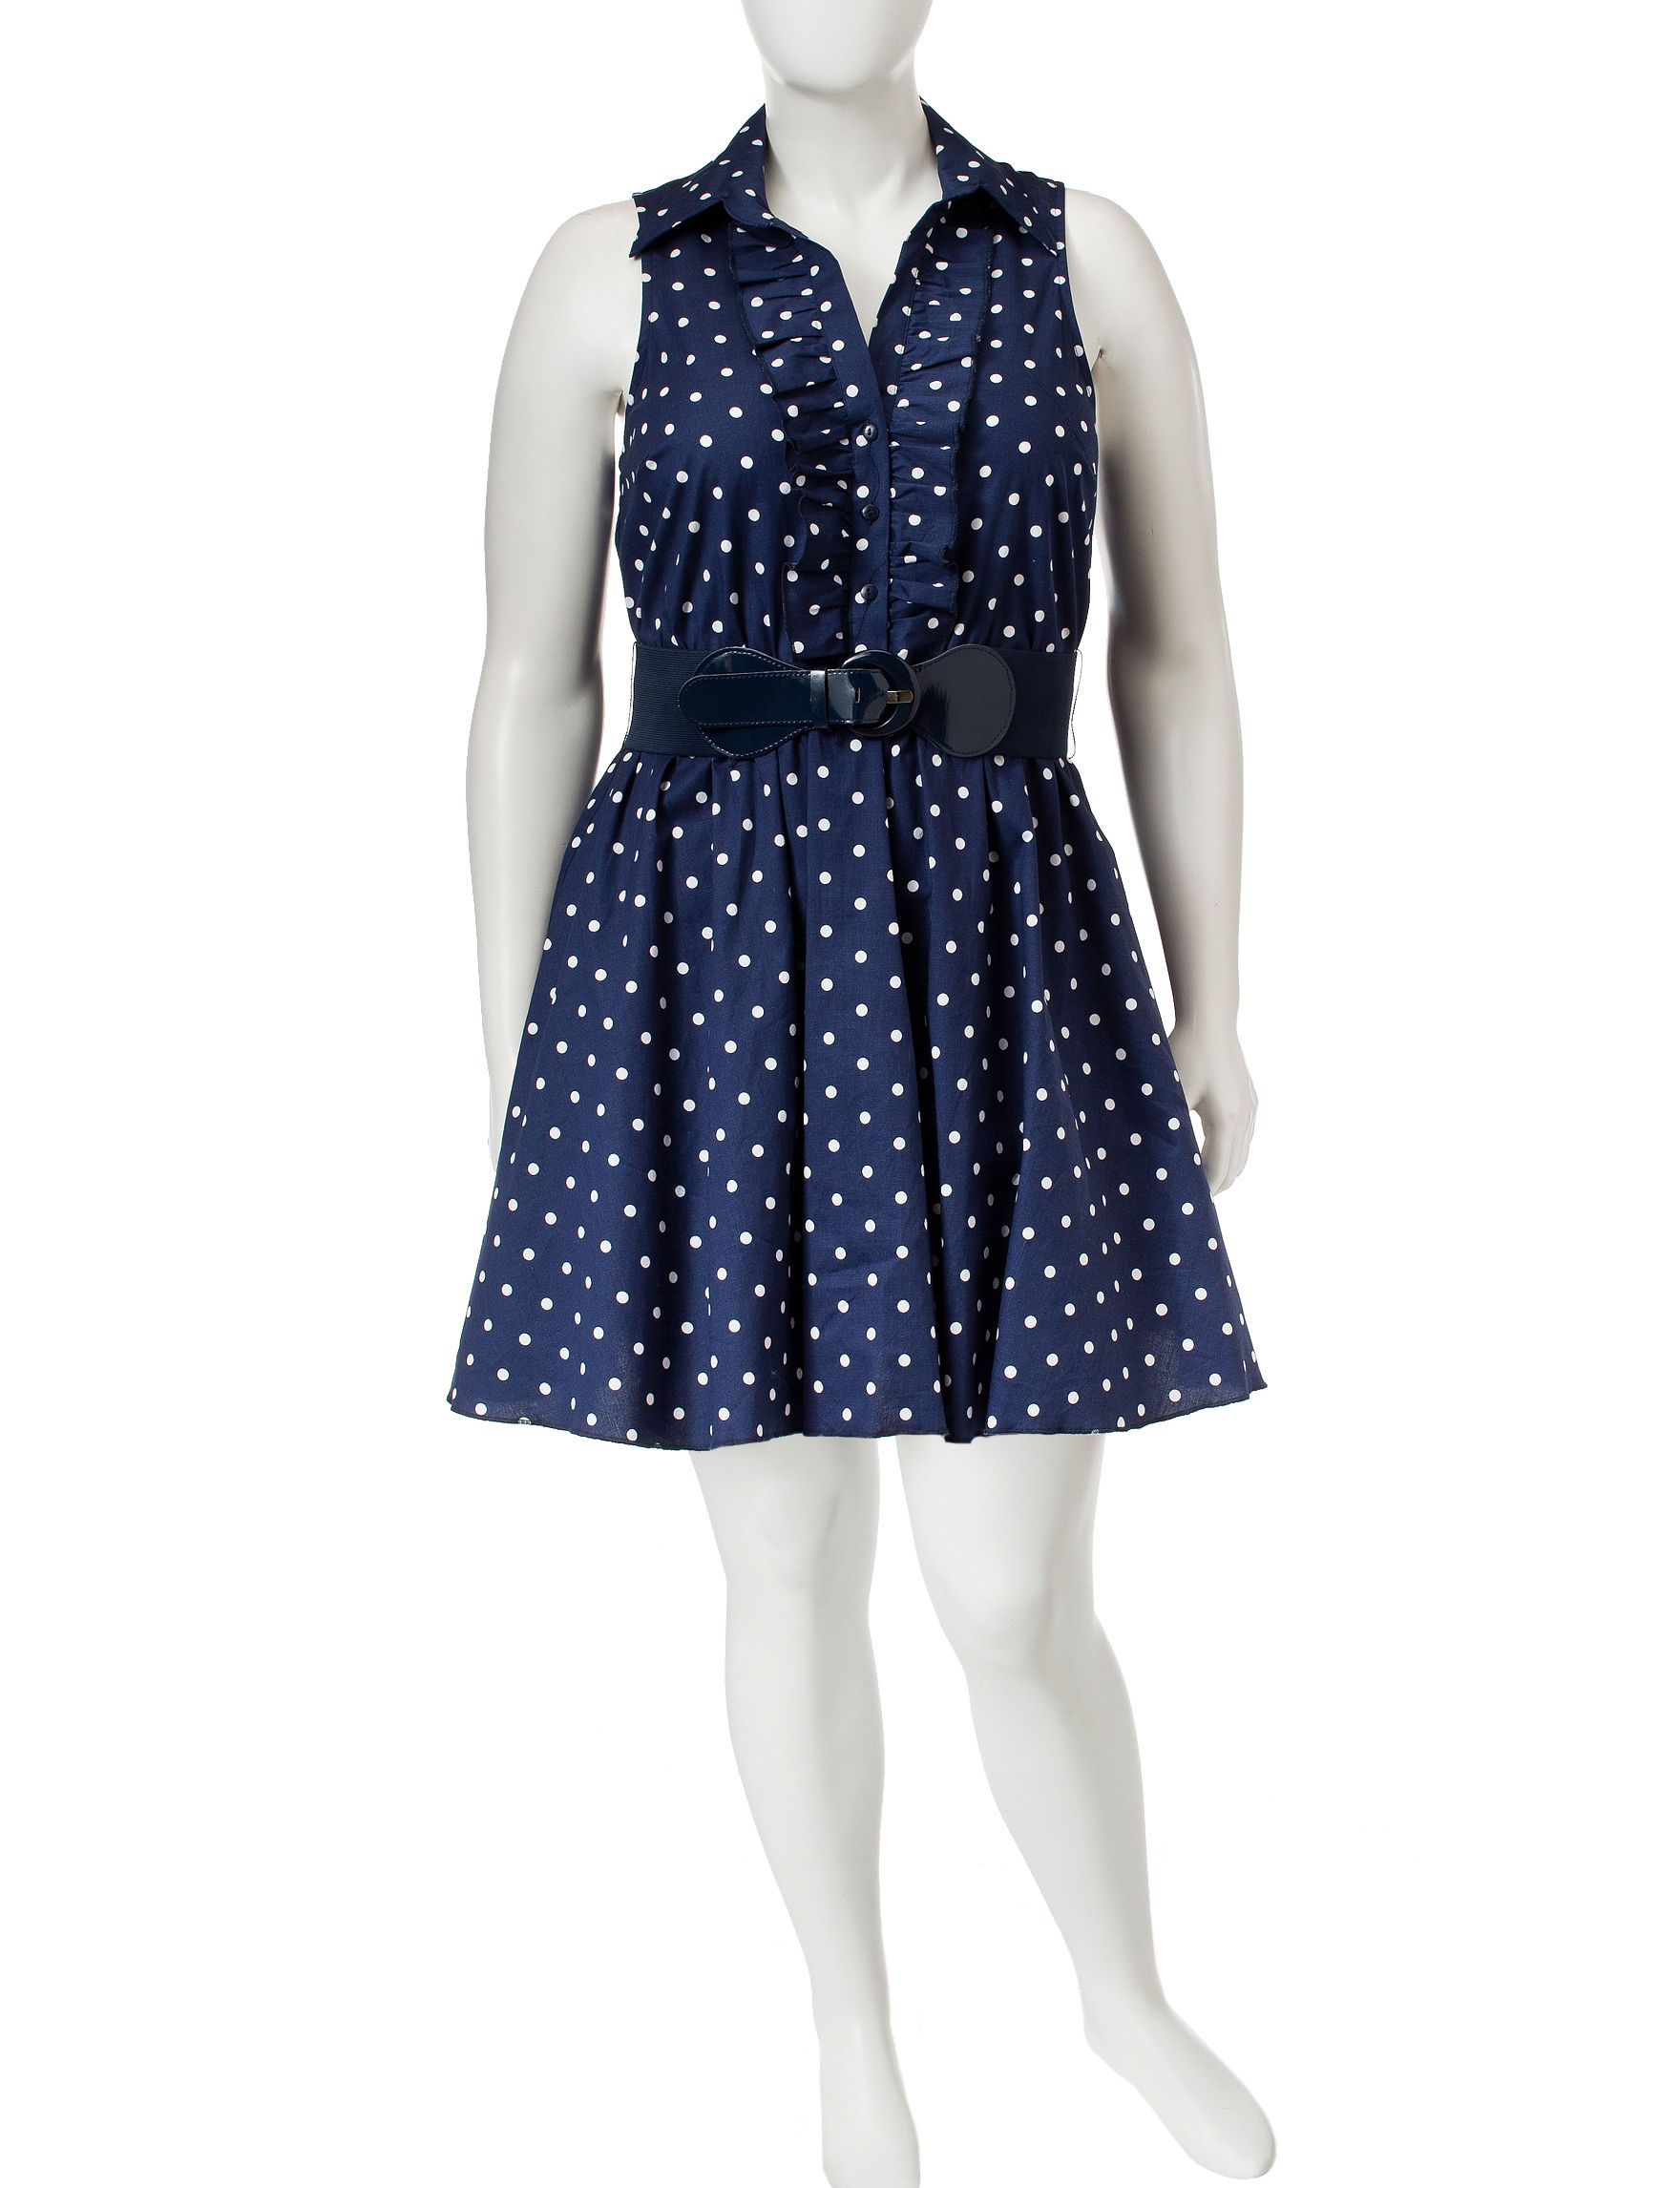 Bailey Blue Navy / White Fit & Flare Dresses